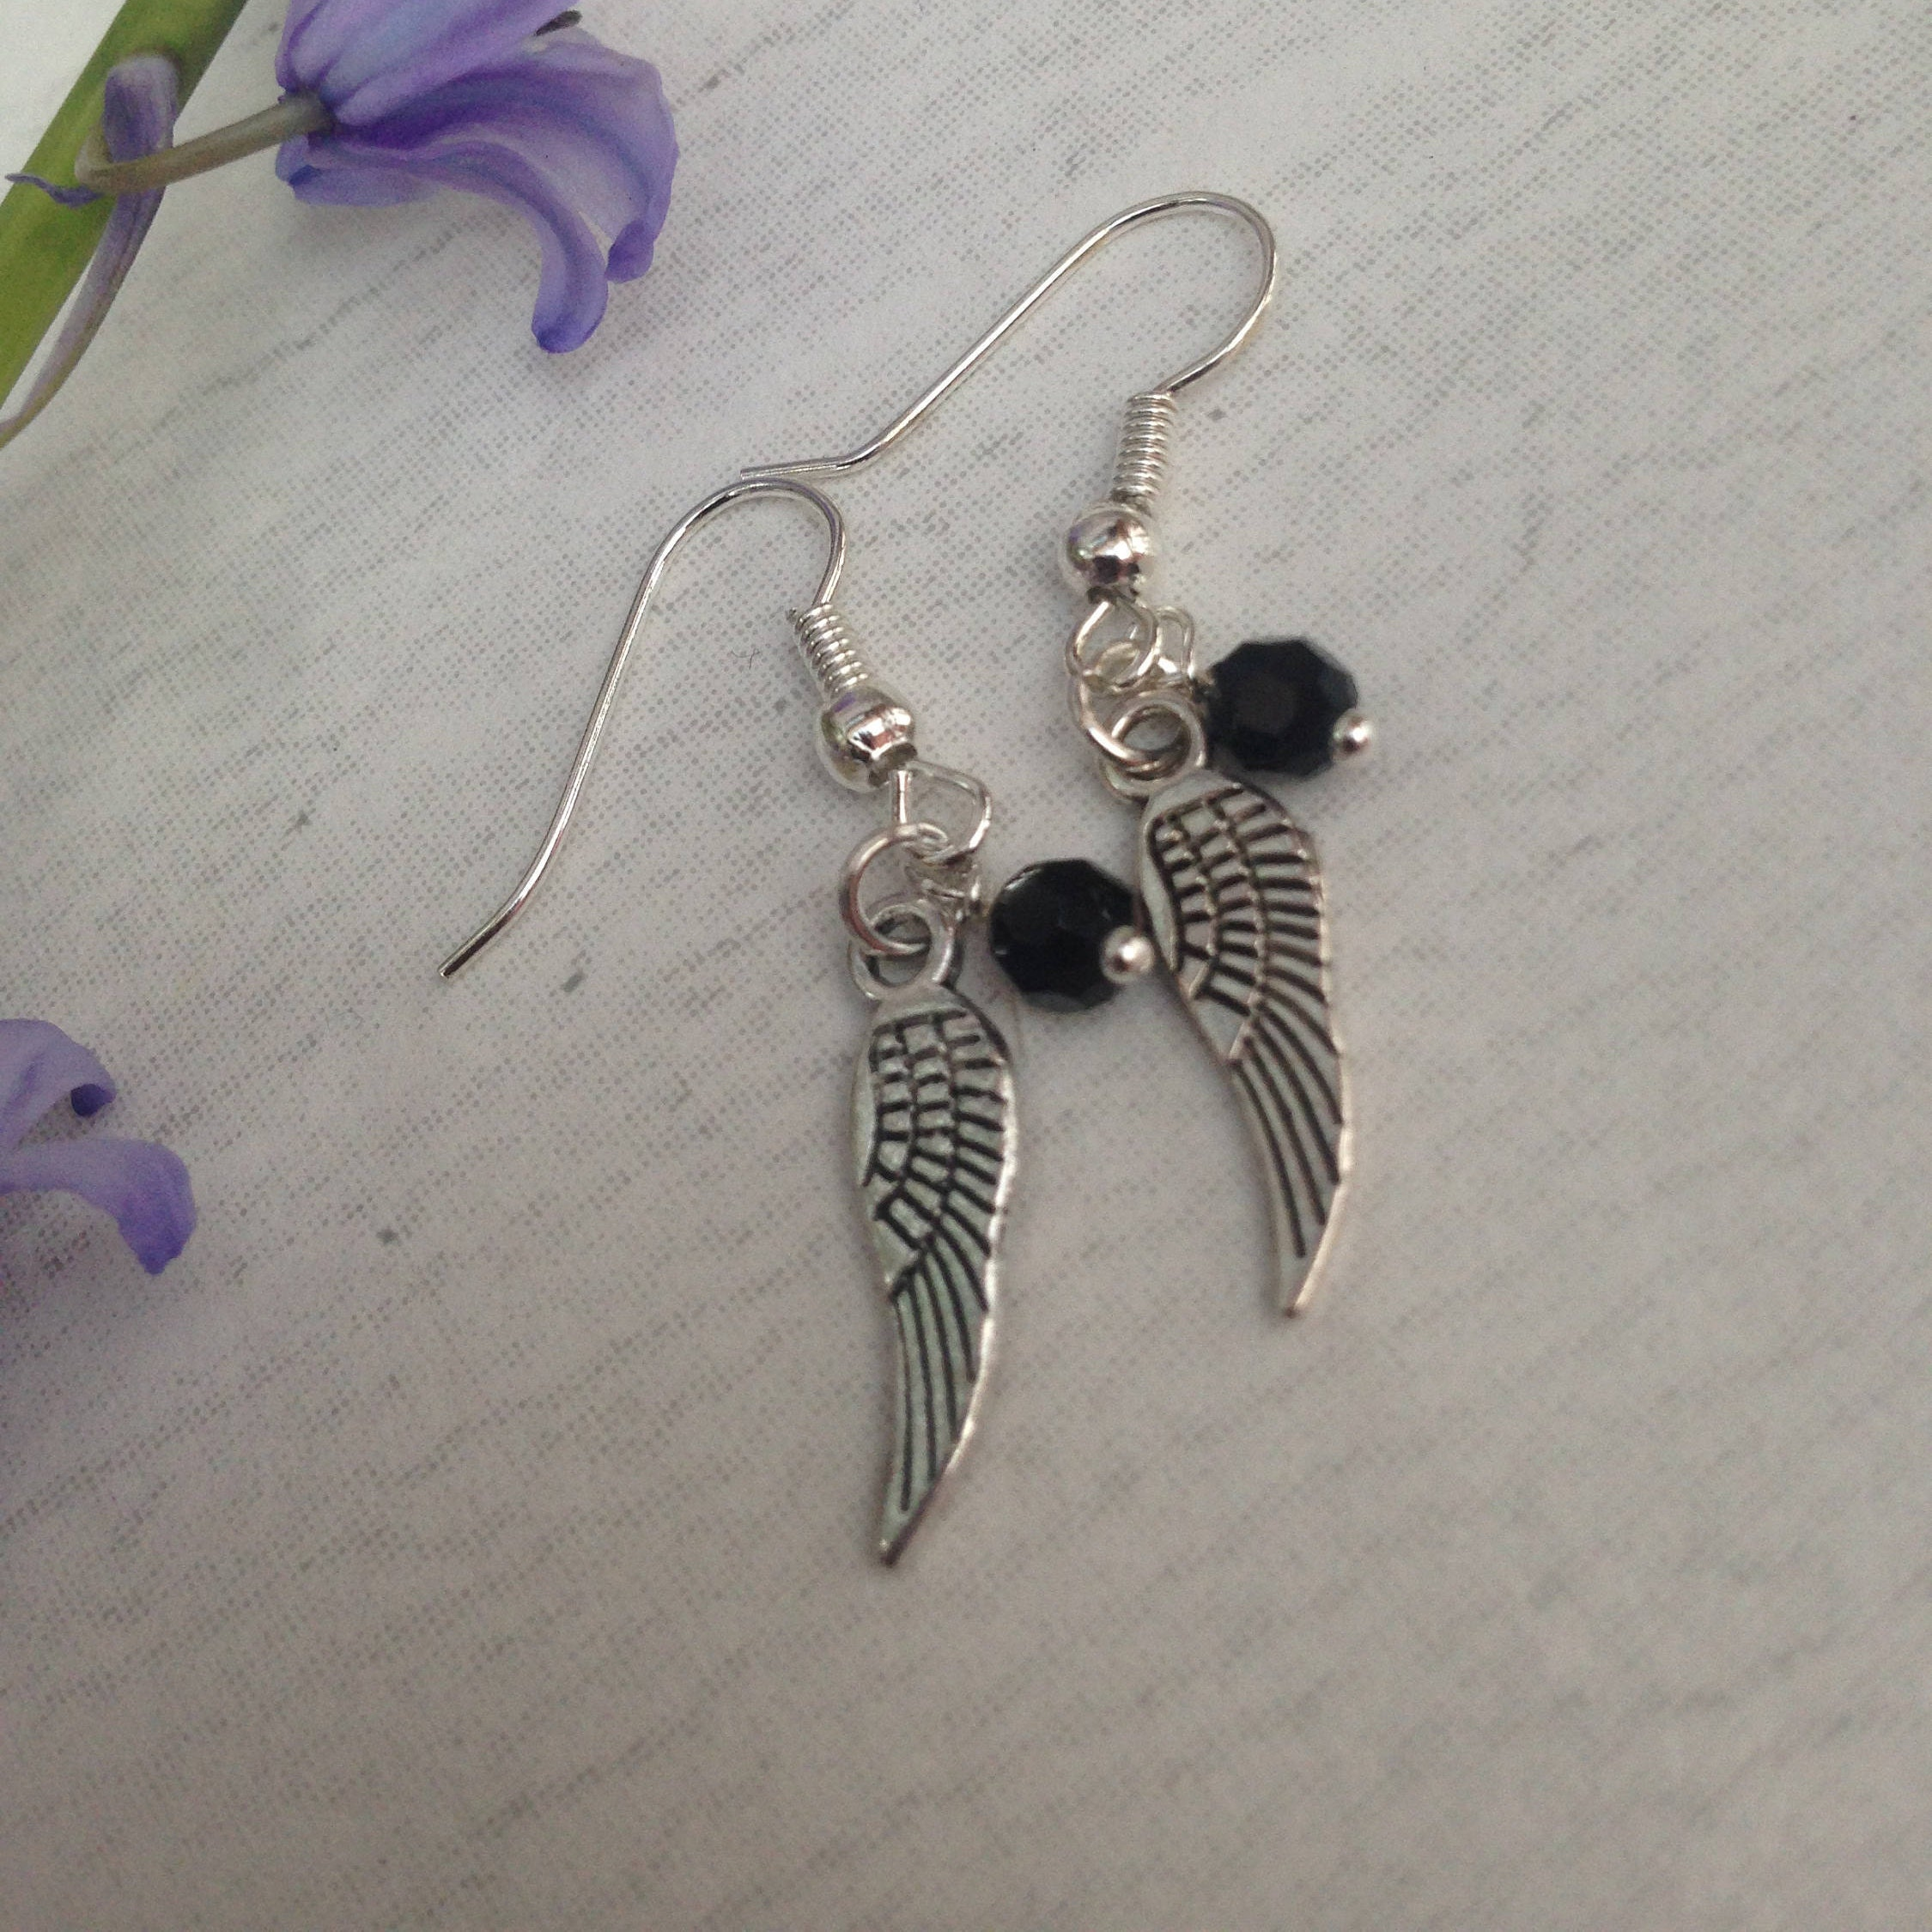 Small Antique Silver Tibetan Wing drop earrings with small black crystal bead.